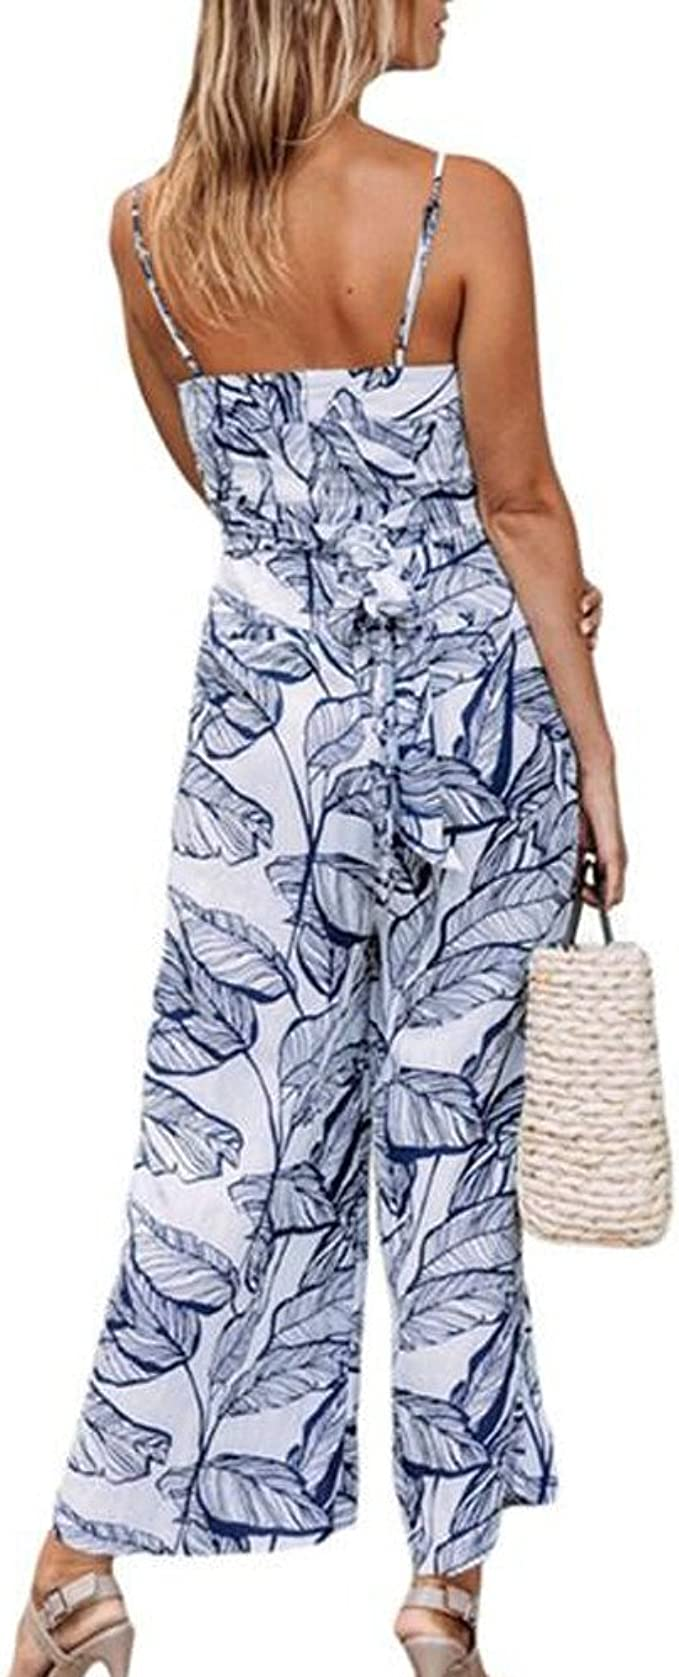 KYLEON Womens Jumpsuits Rompers Sleeveless Striped V Neck Bandage Loose Summer Casual Wide Leg Pants Playsuits Outfit